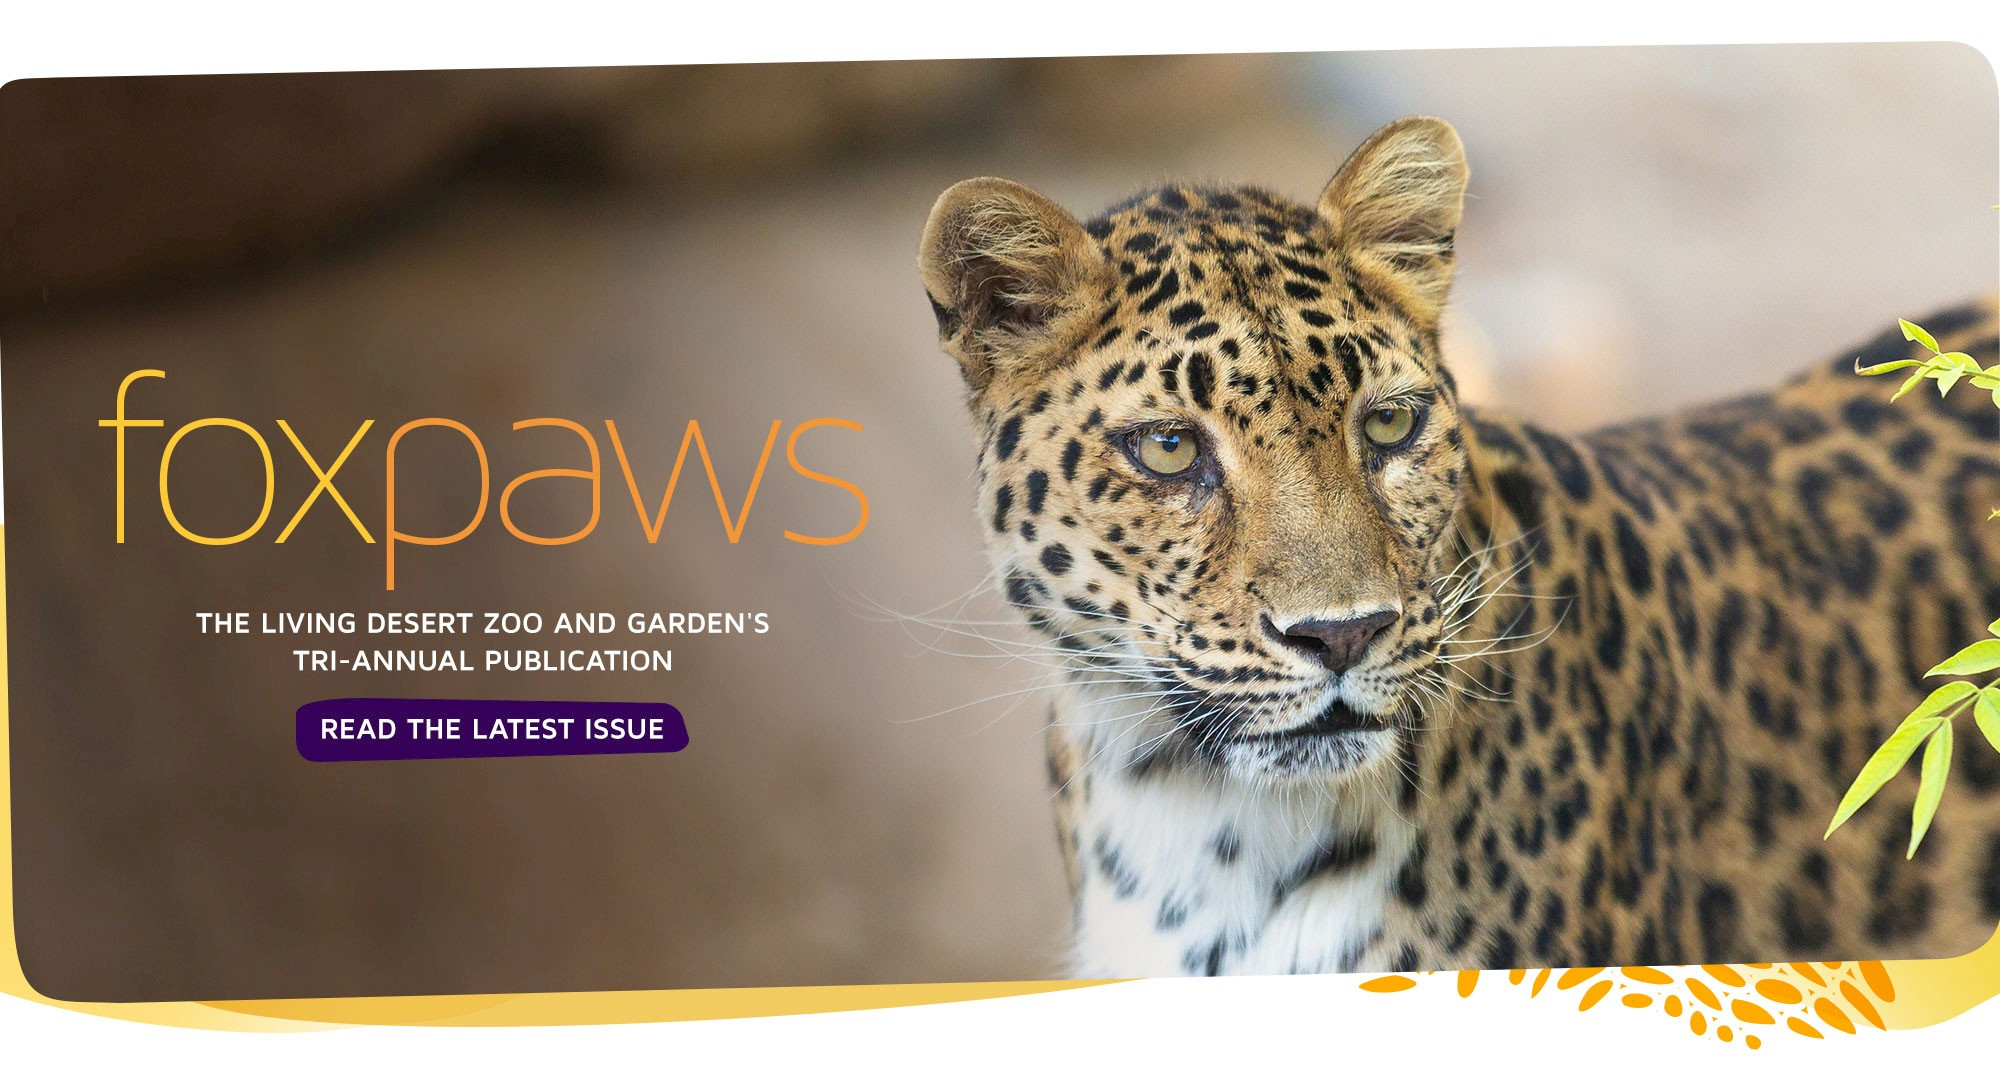 foxpaws | The Living Desert Zoo and Garden's tri-annual publication